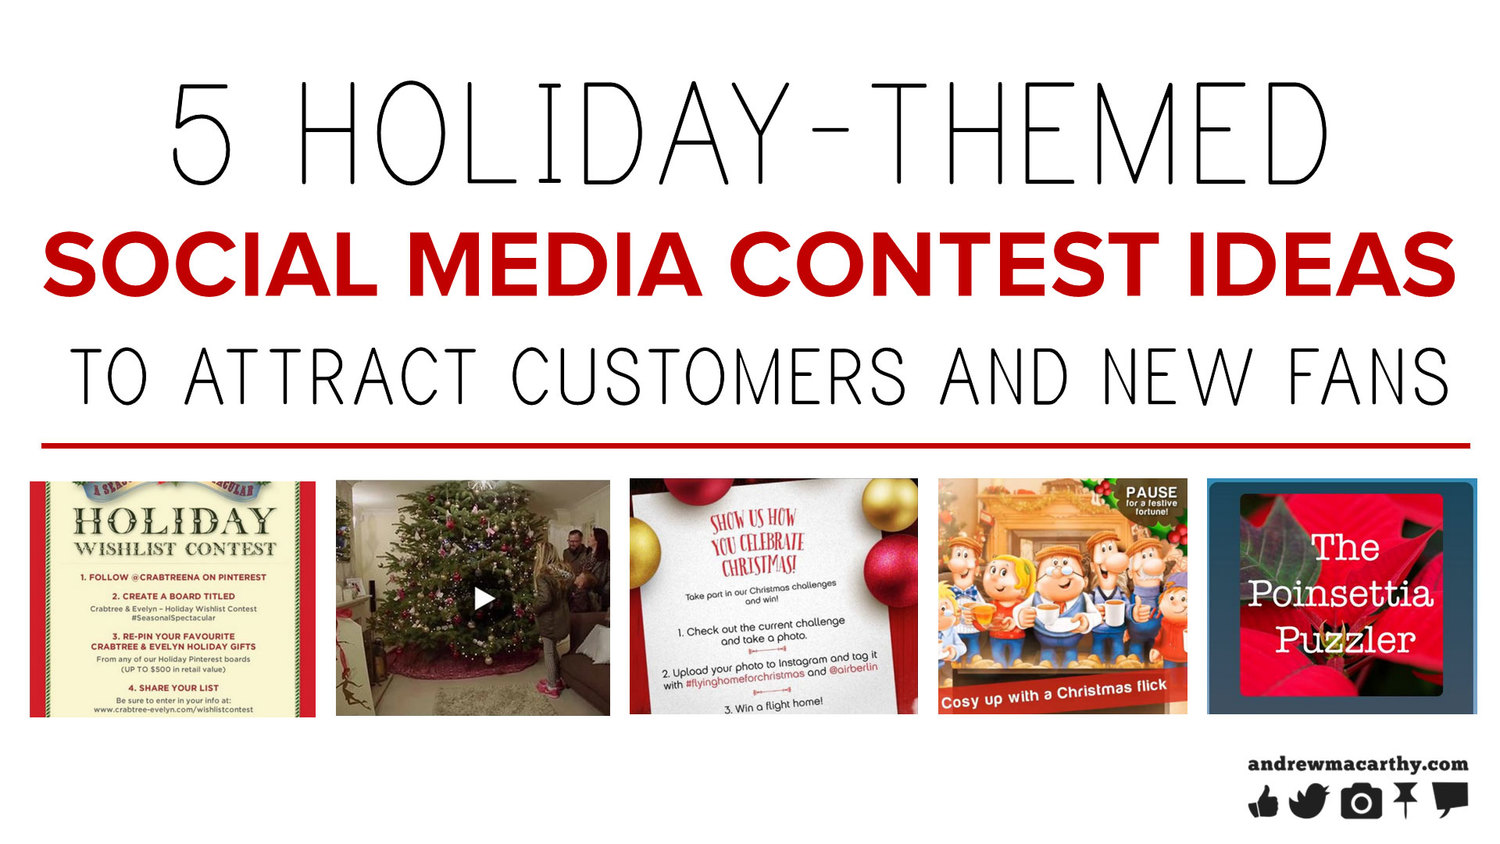 5 holiday-themed social media contest ideas to attract customers